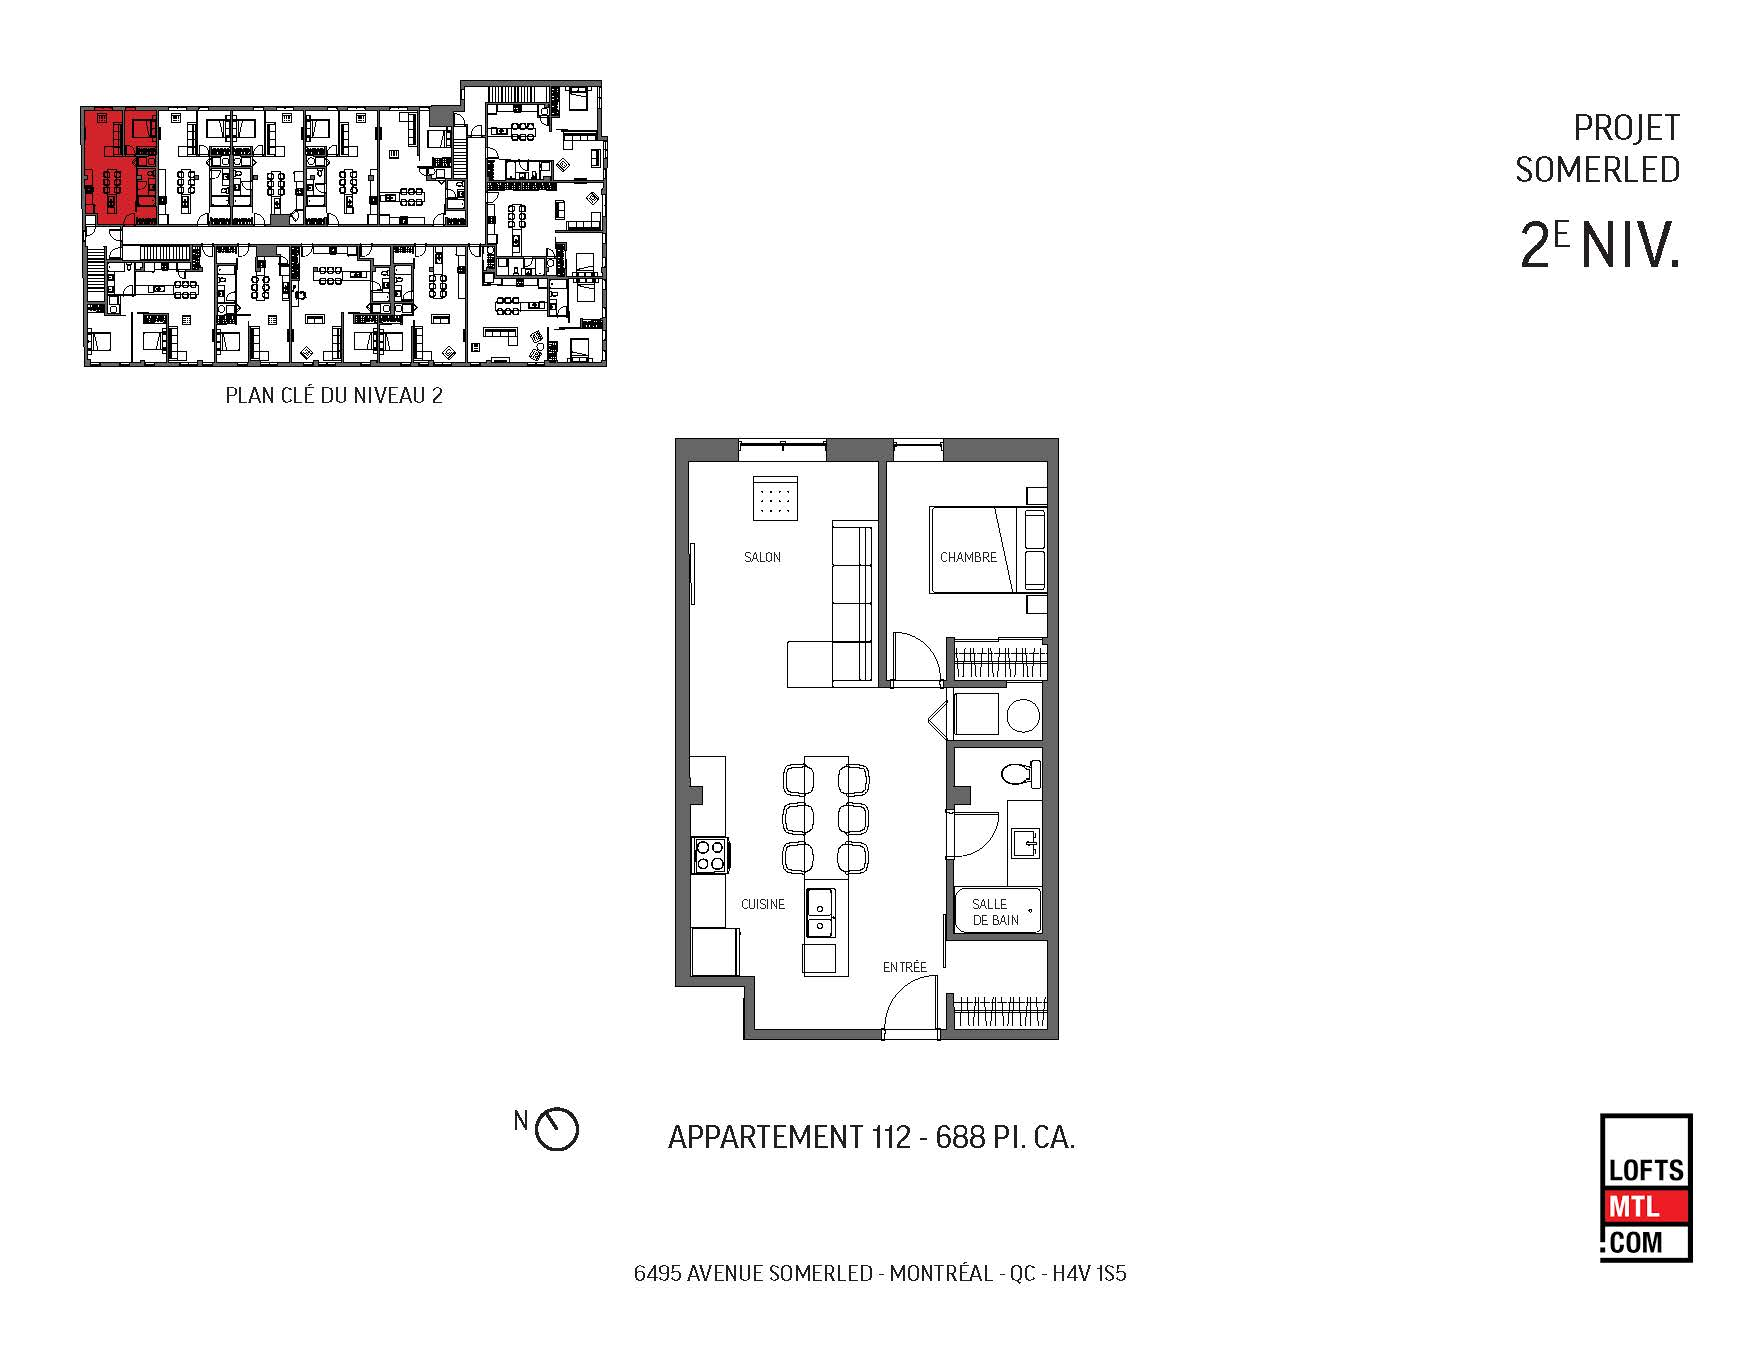 Plans appartements vectoriel Somerled_Page_12.jpg